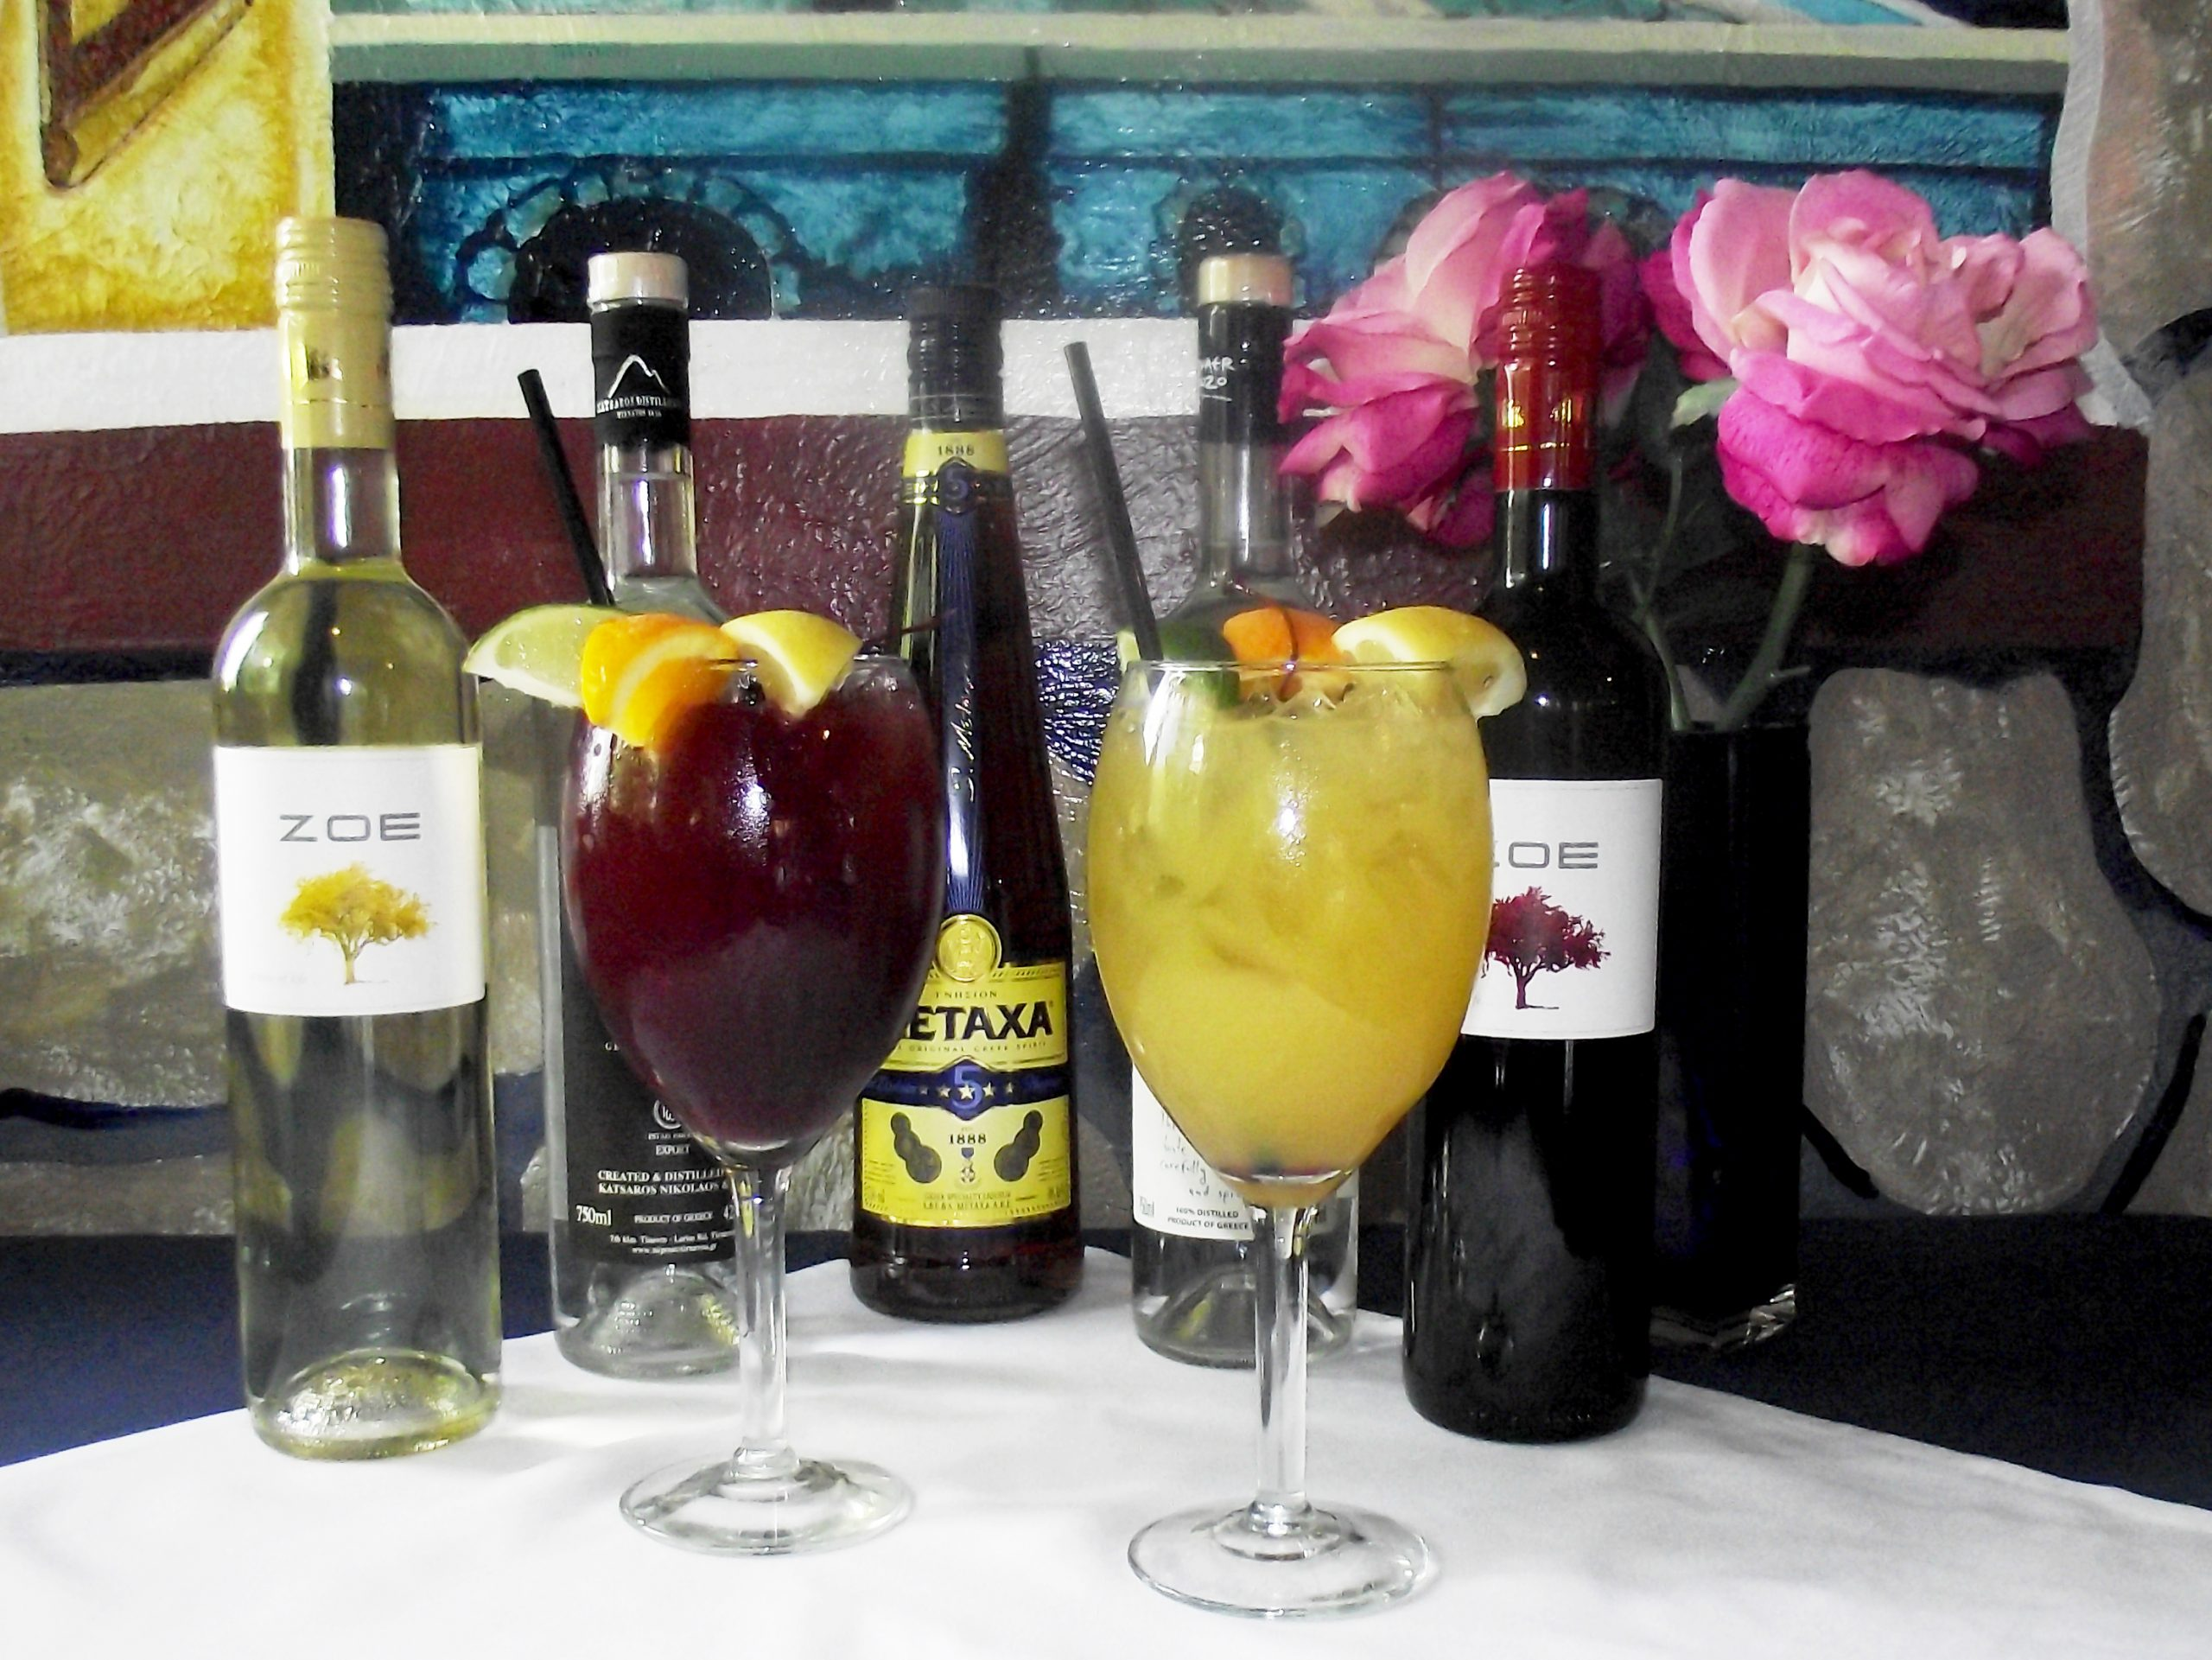 Two glasses of Sangria with bottles of red and white Zoe and Metaxa spirits